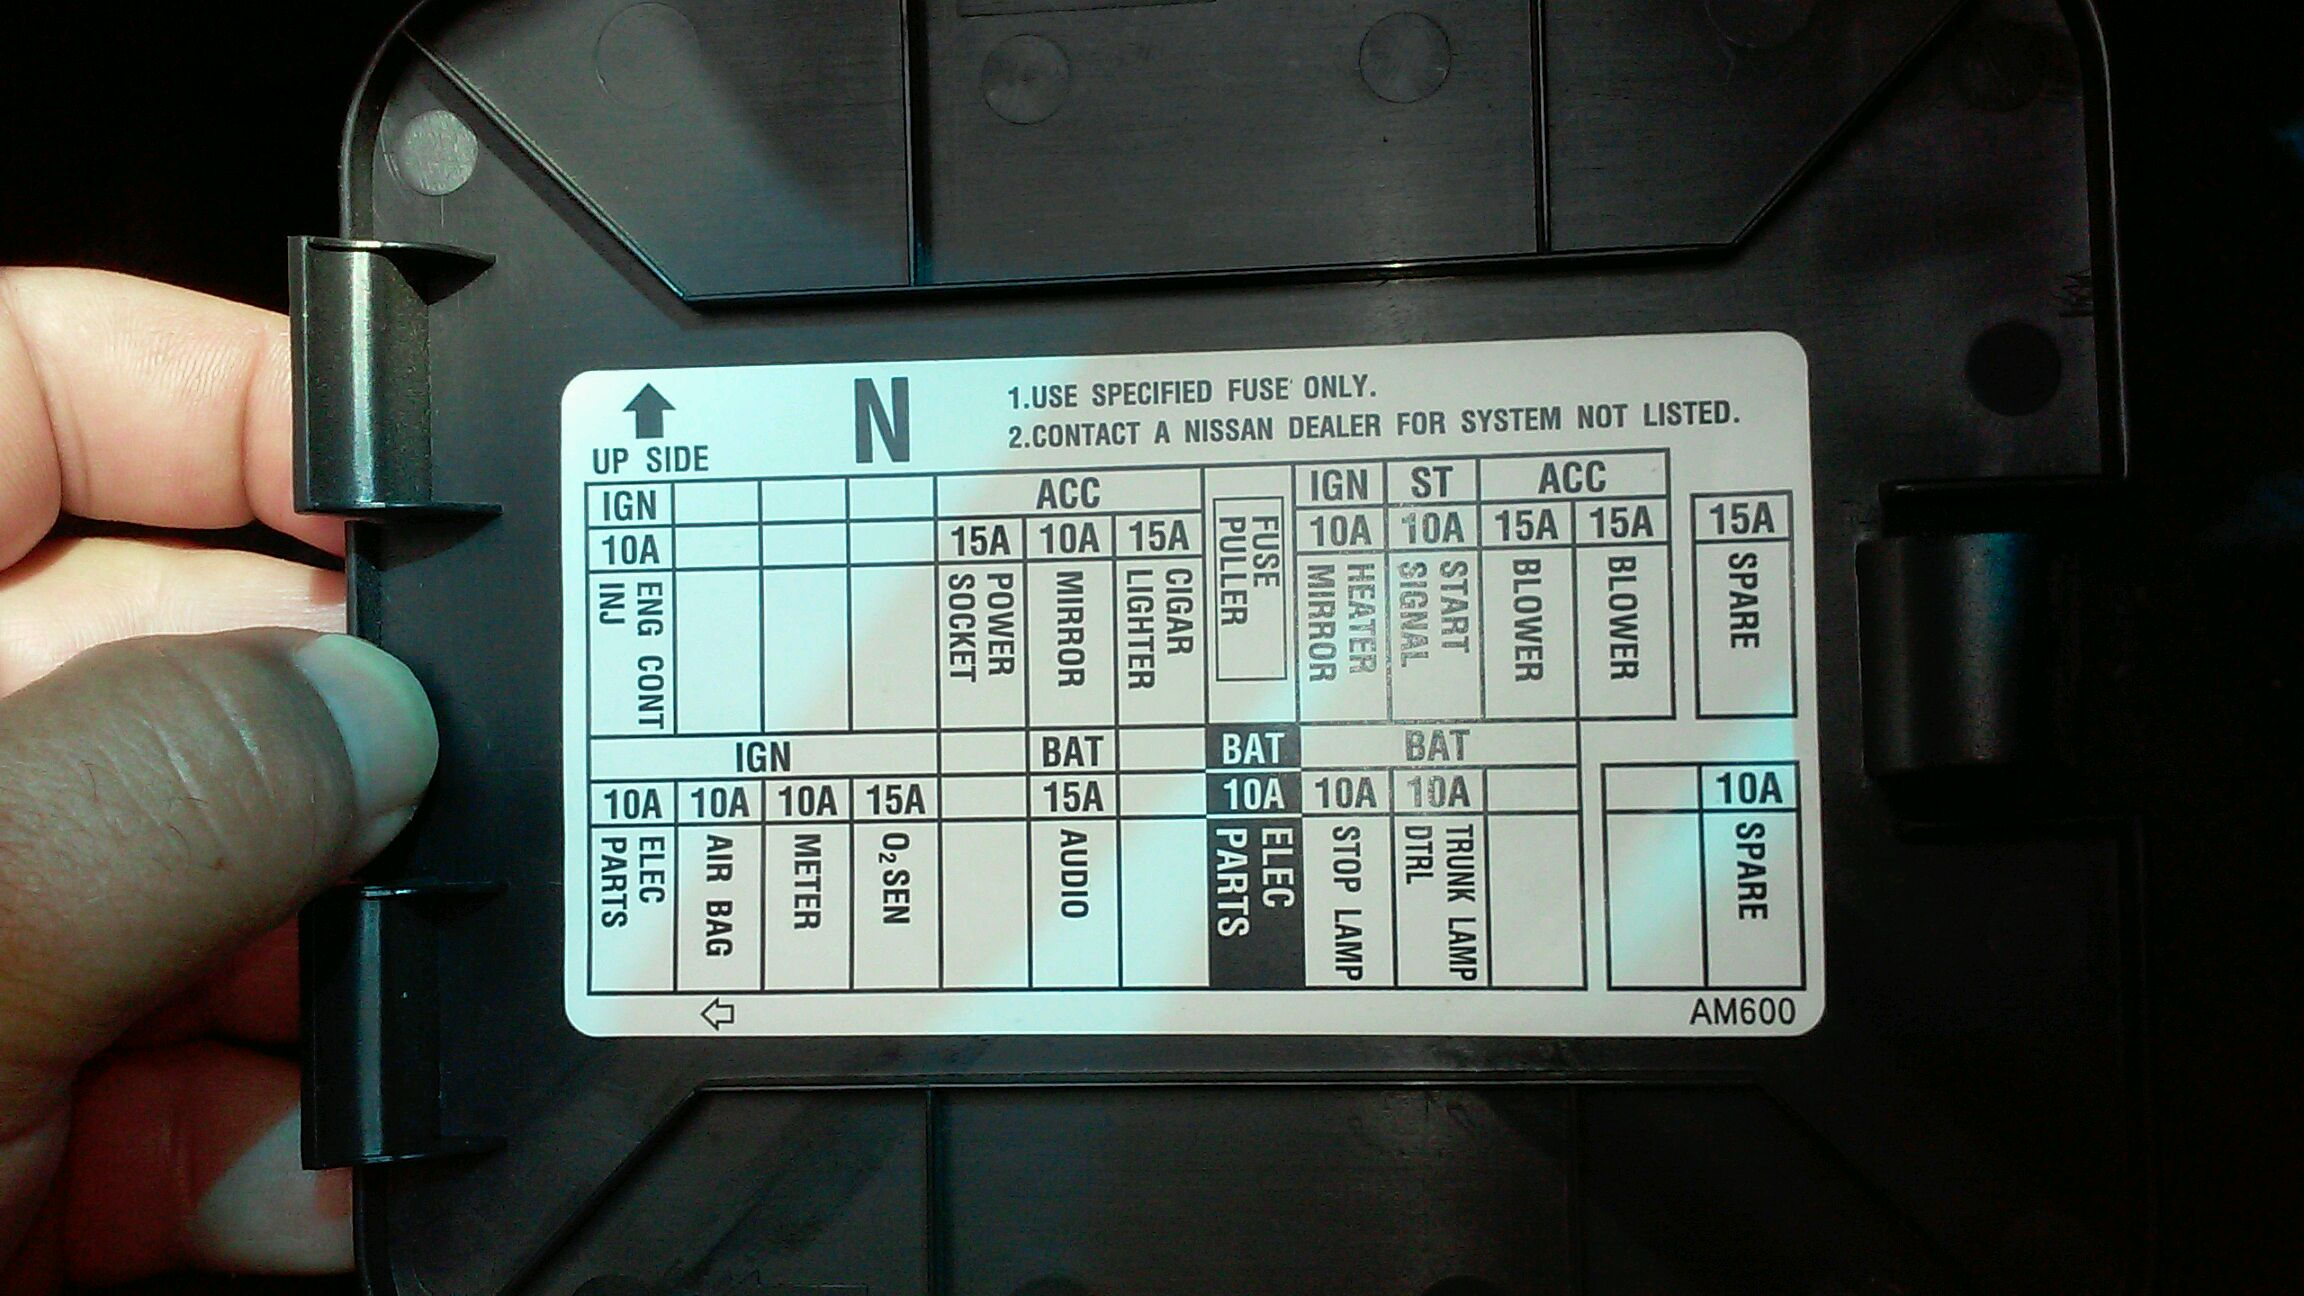 [DIAGRAM_38ZD]  D8E634 Fuse Box In 2003 Infiniti G35 | Wiring Library | 2006 Infiniti G35 Wiring Diagram |  | Wiring Library